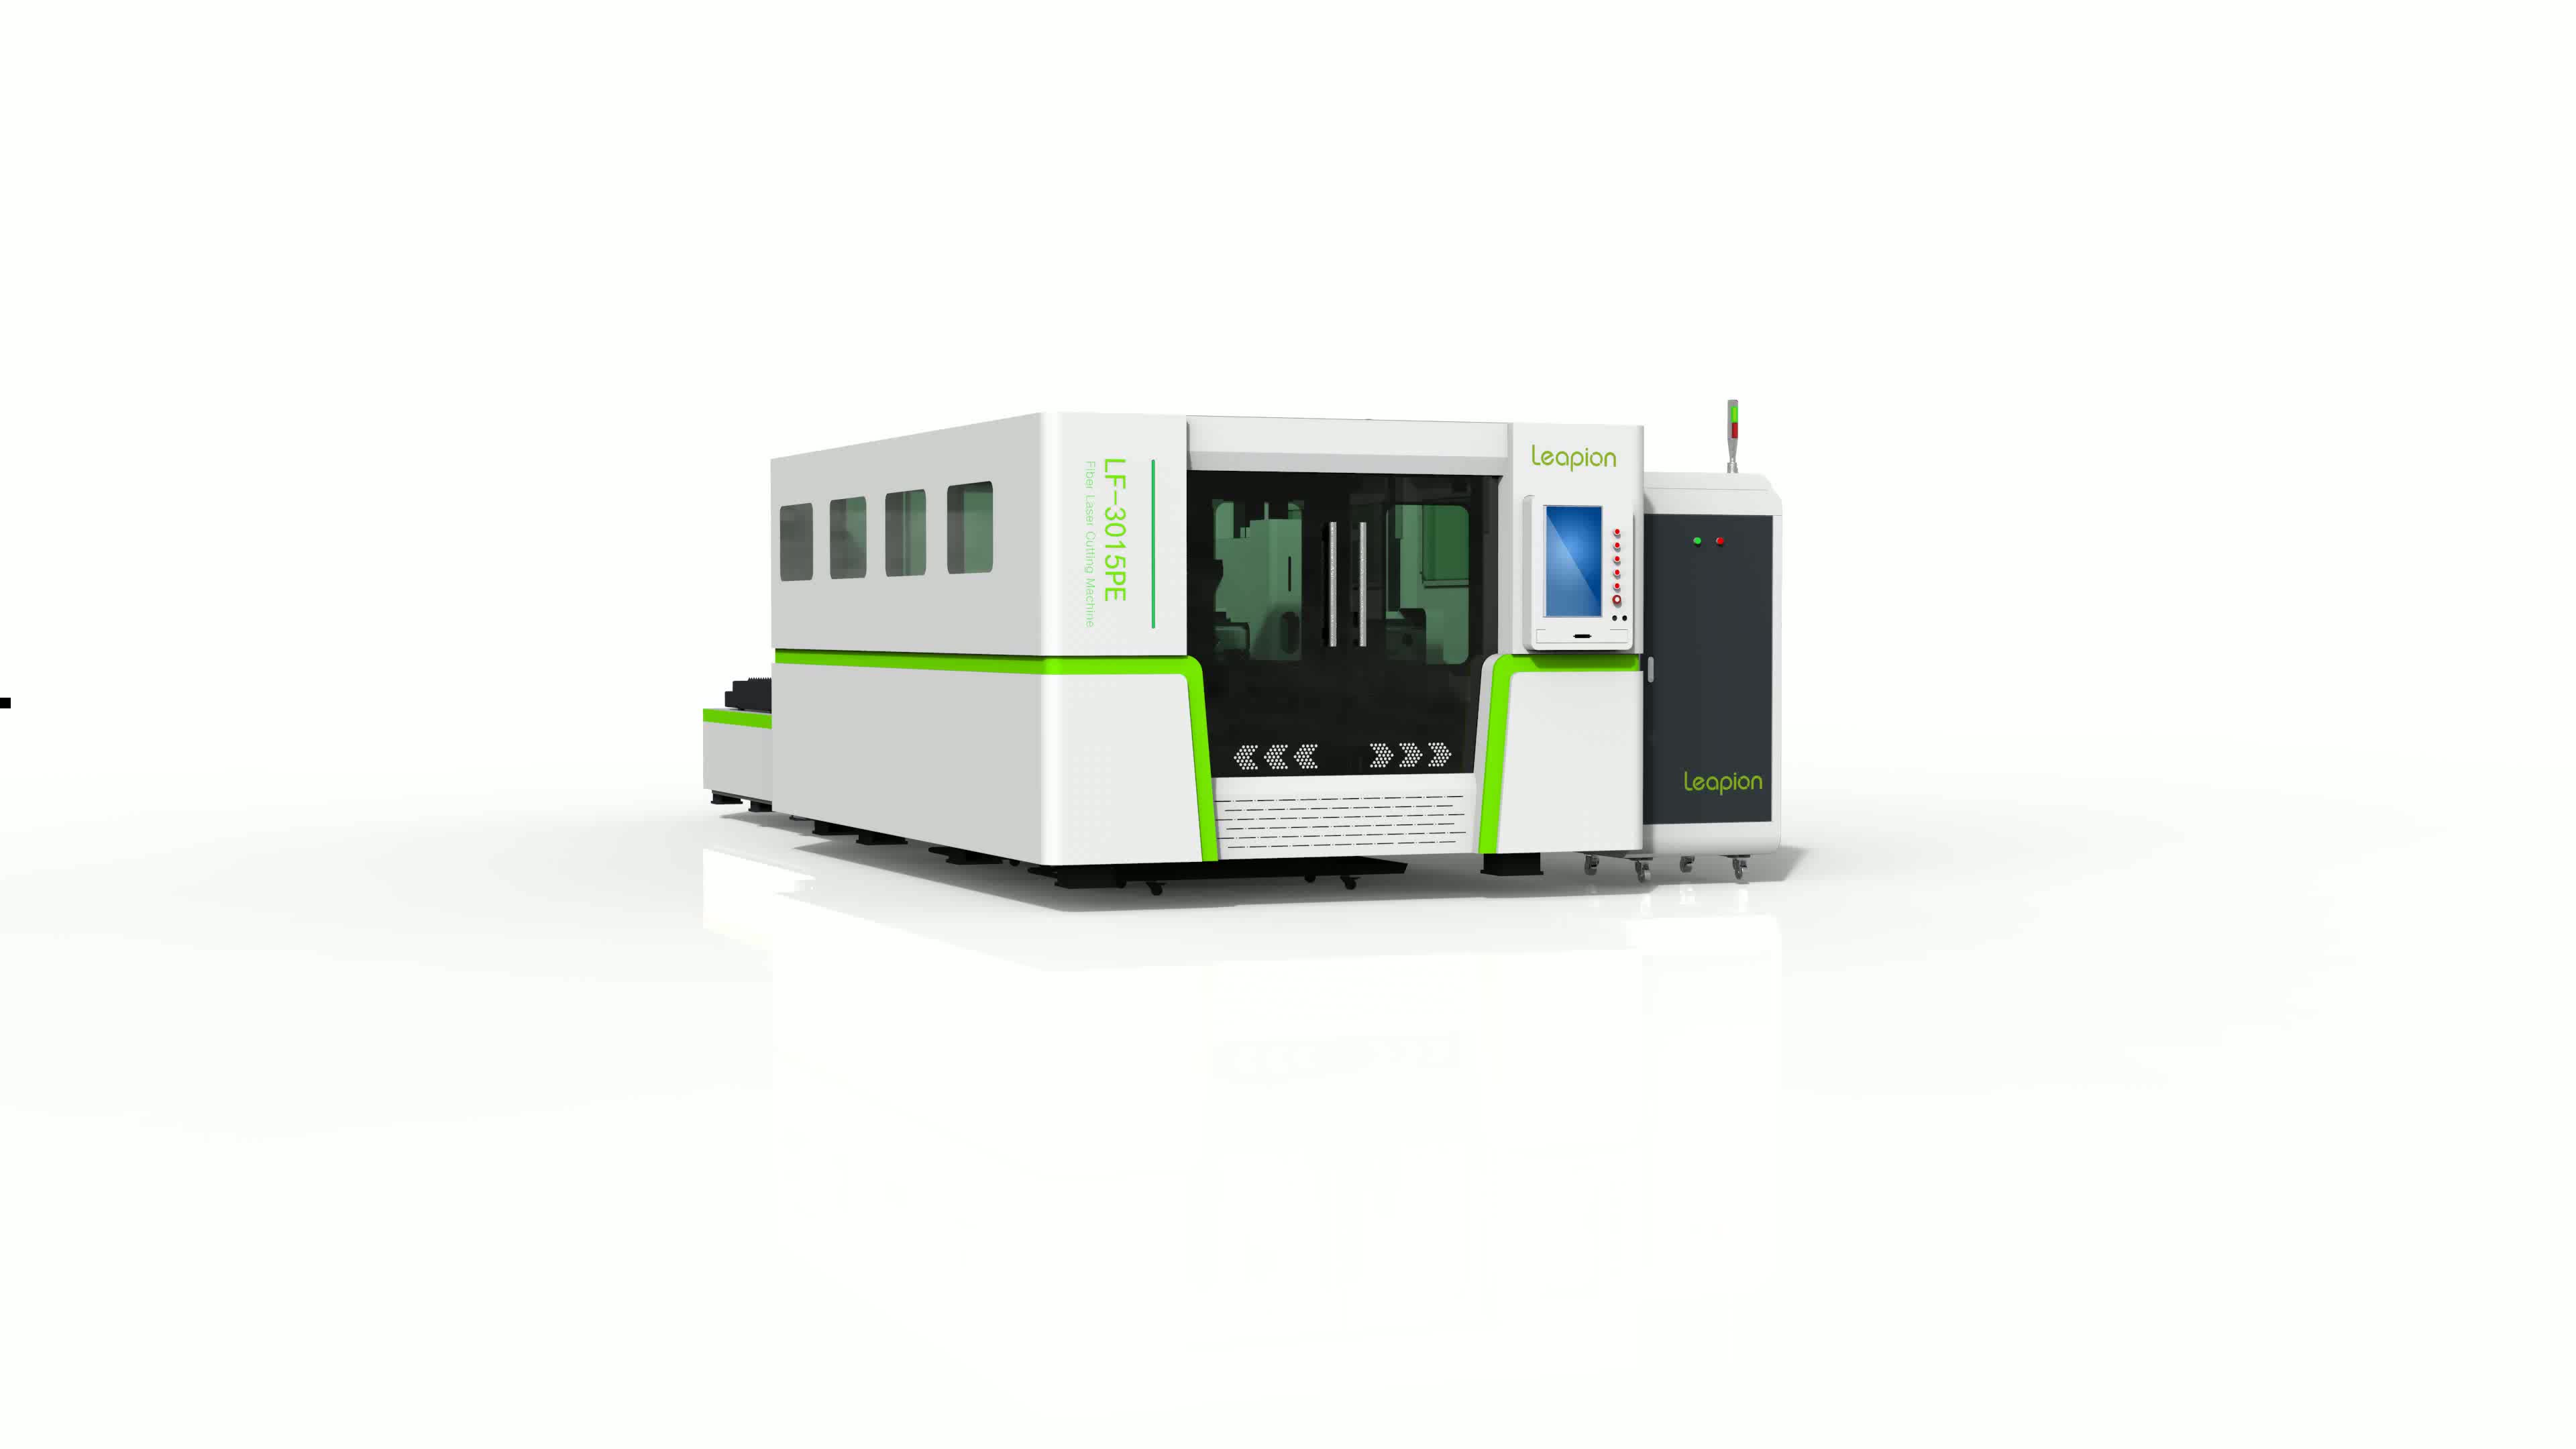 2019 new model enclosed metal fiber laser cutting machine for cutting stainless steel, carbon steel, aluminum, iron